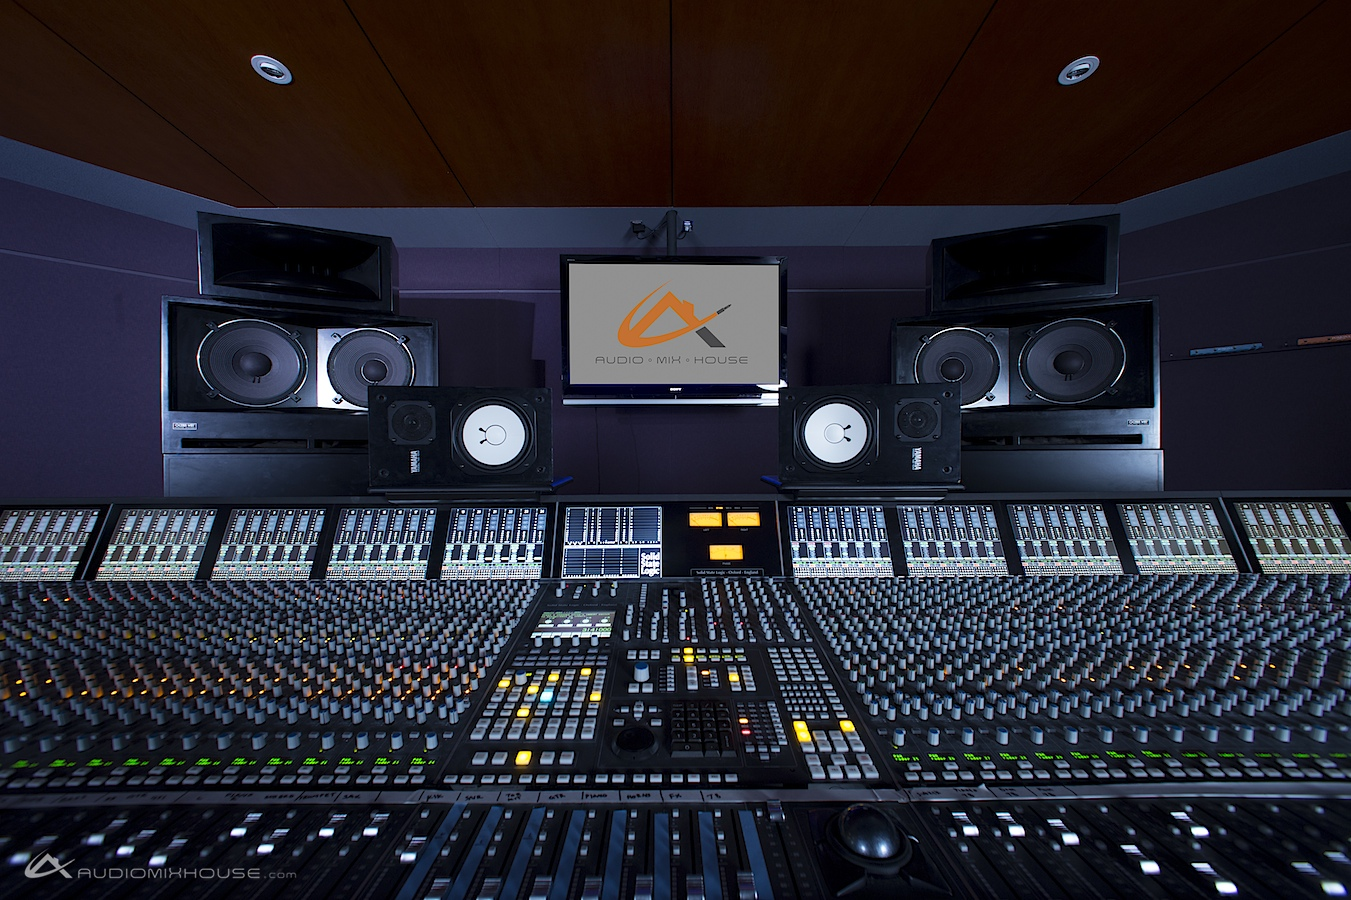 File:96-channel Solid State Logic (SSL) Duality at Audio Mix House, Studio  A (13429934964).jpg - Wikimedia Commons